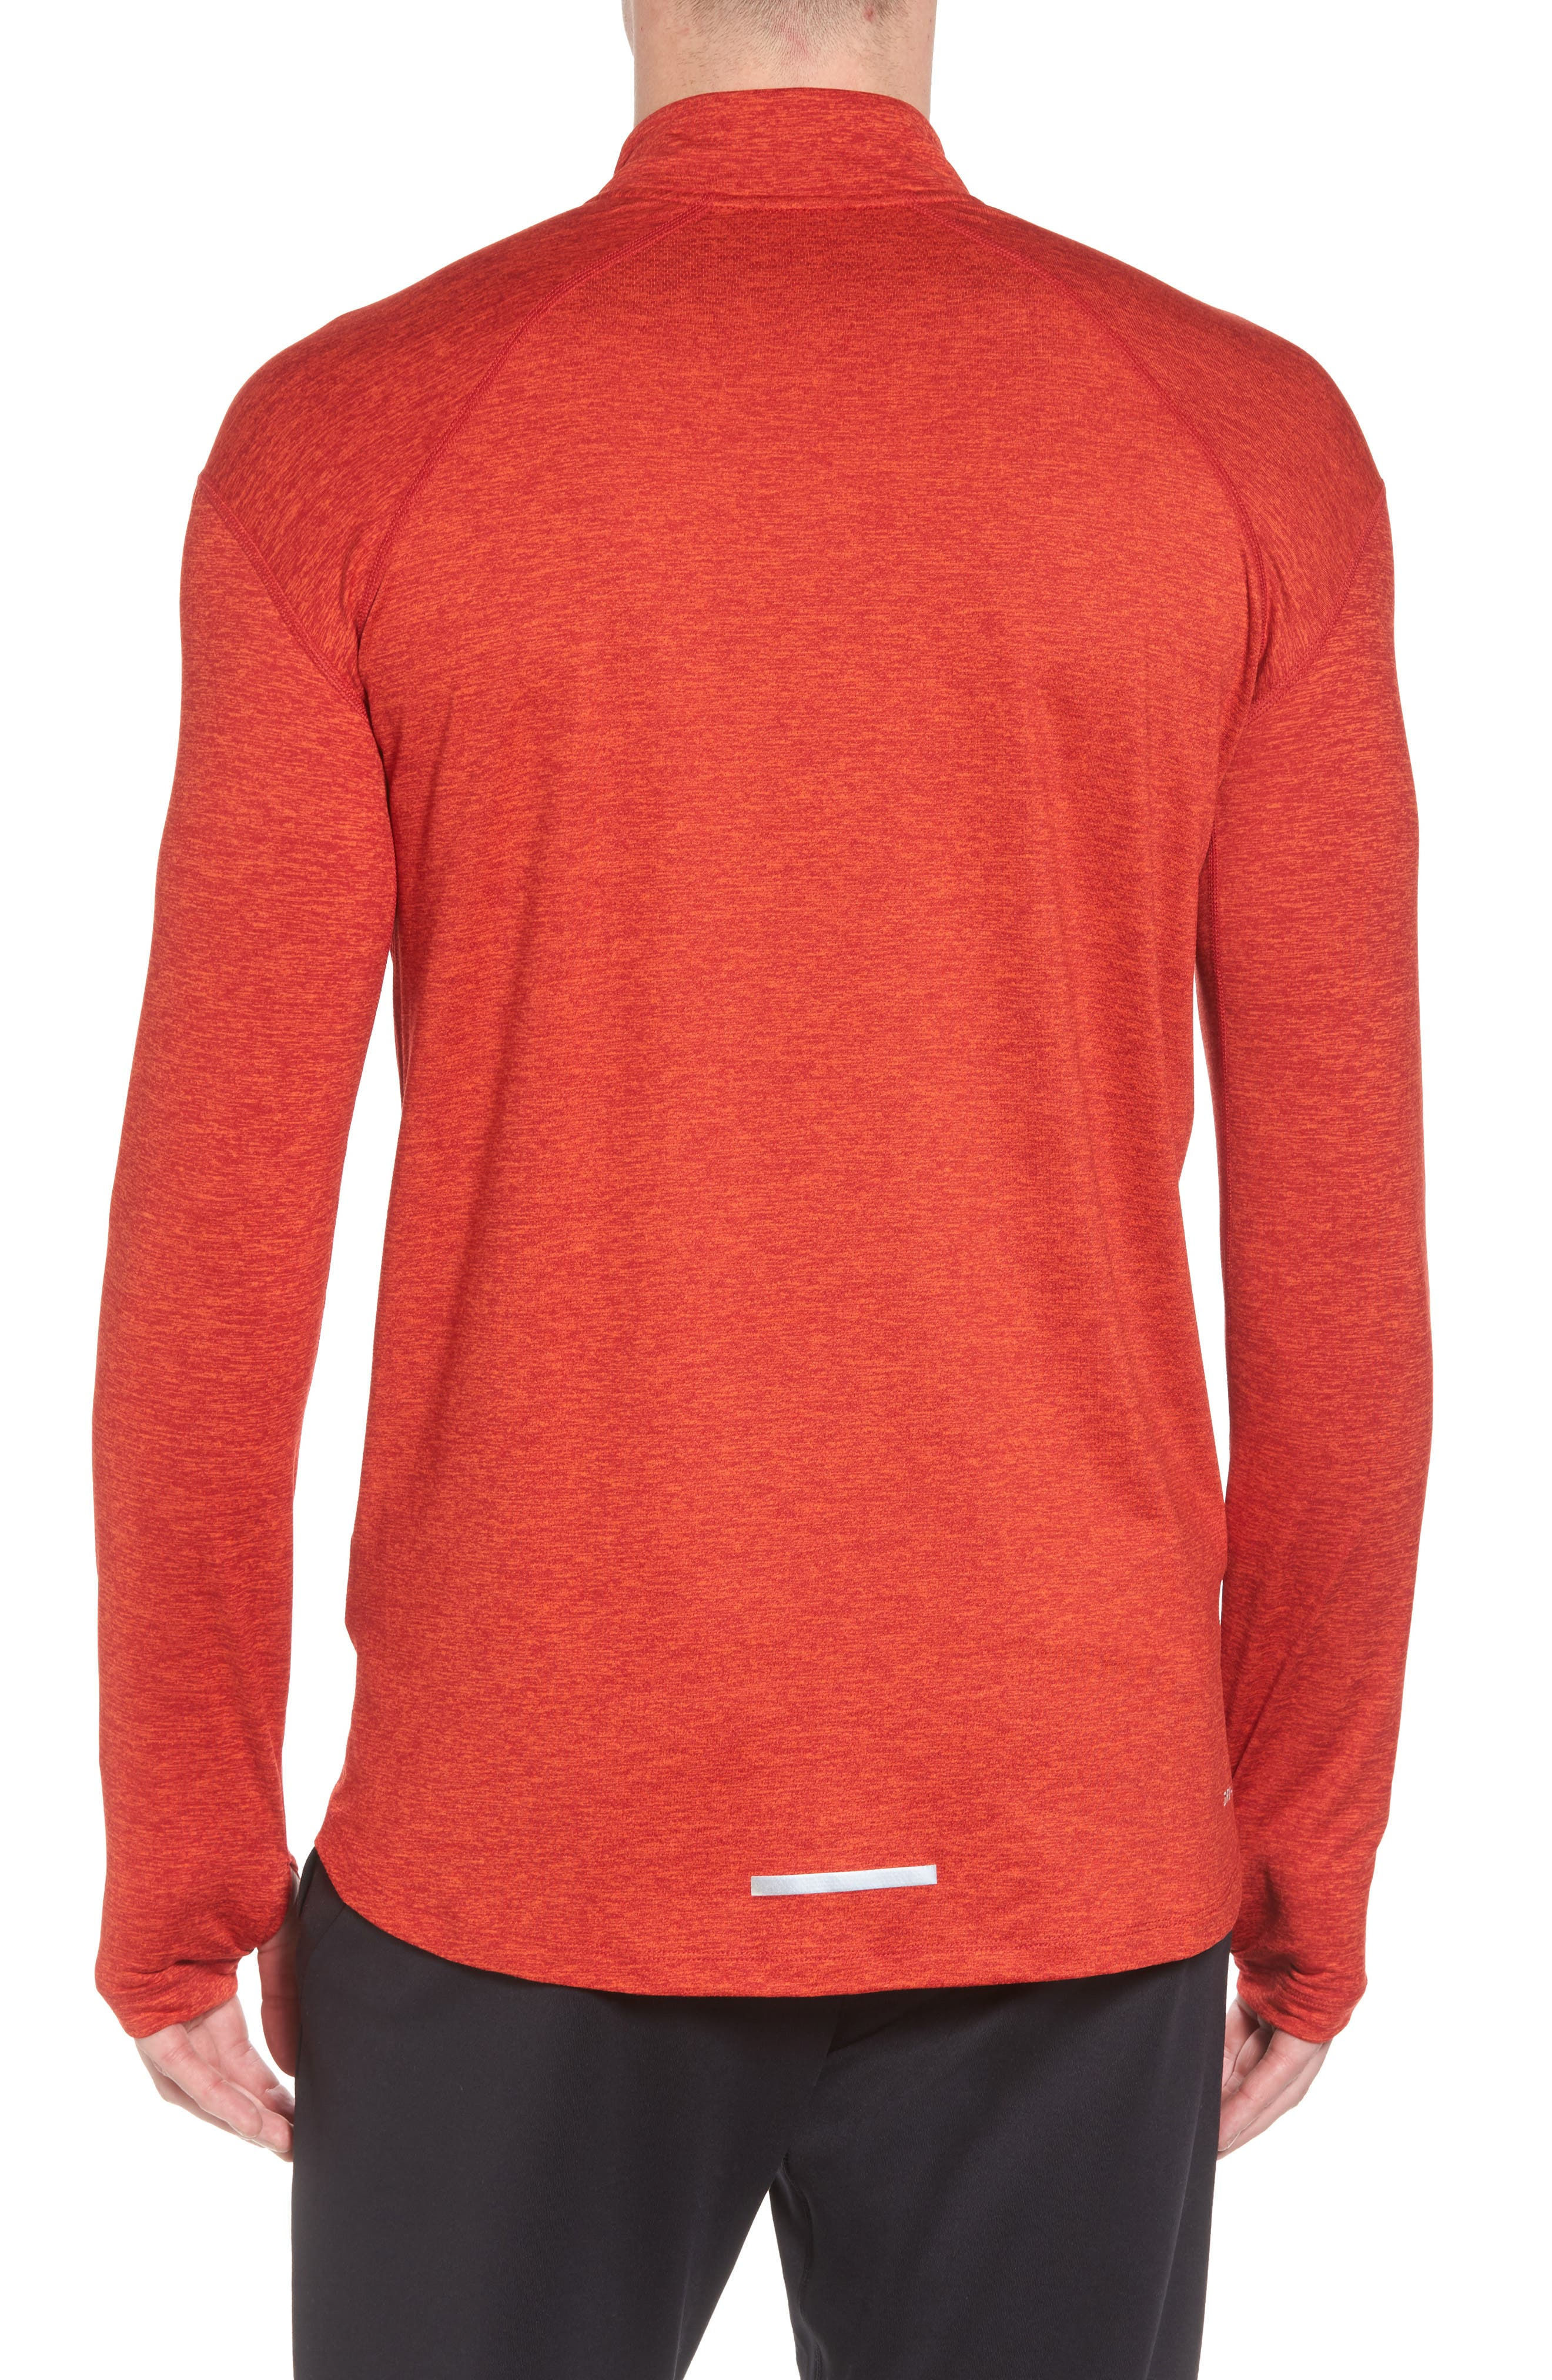 Dry Element Running Top,                             Alternate thumbnail 10, color,